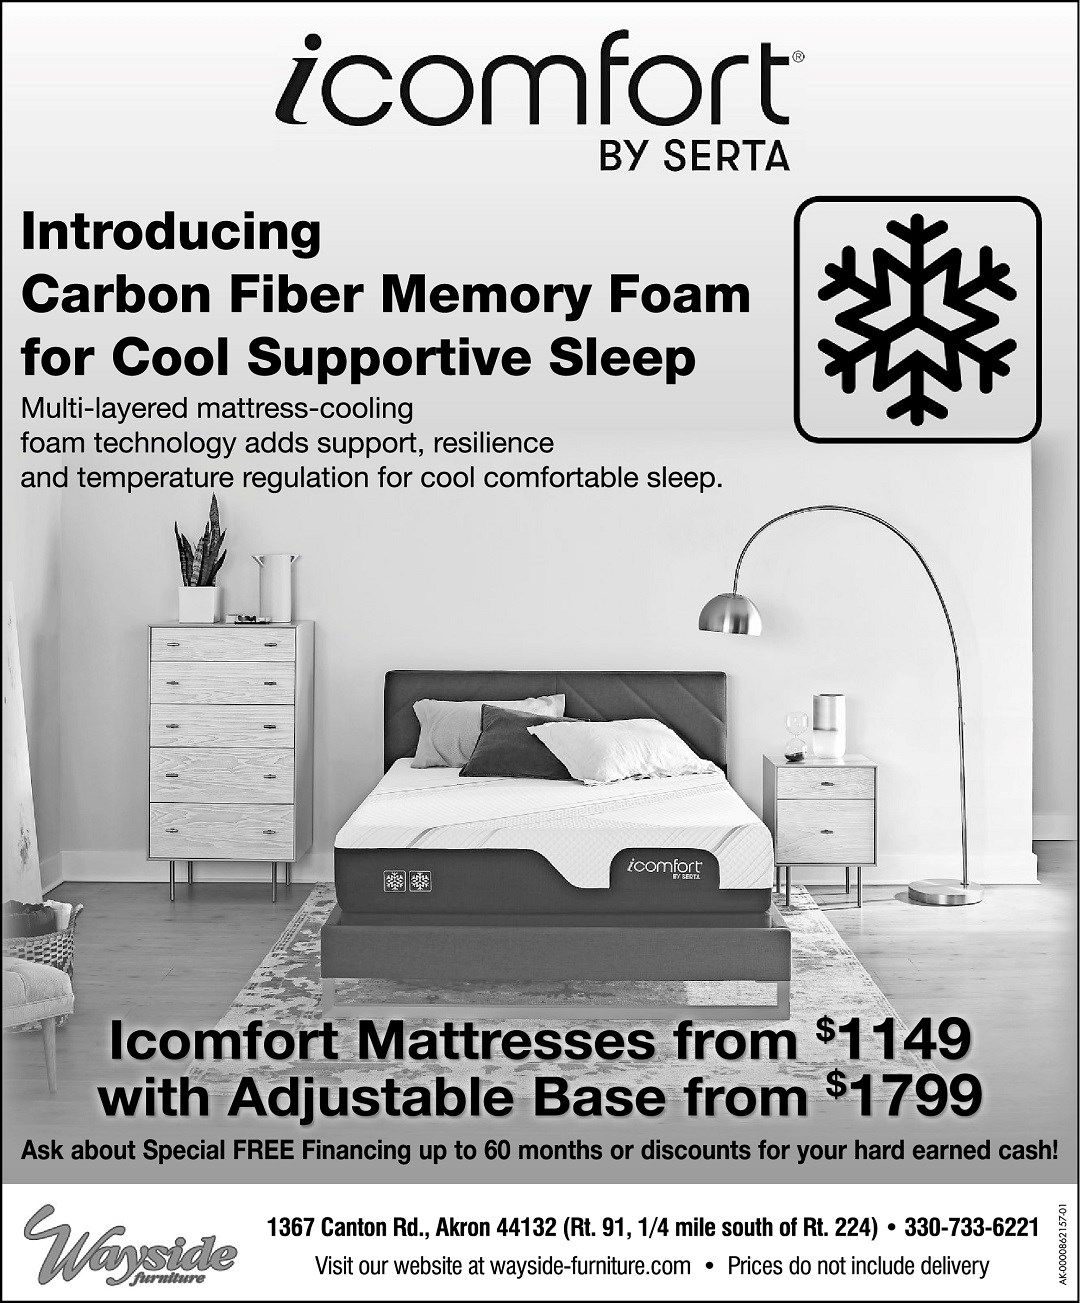 Introducing iComfort by Serta Carbon Fiber Memory foam for Cool Supportive Sleep. Mattresses from $1149 with adjustable base from $1749